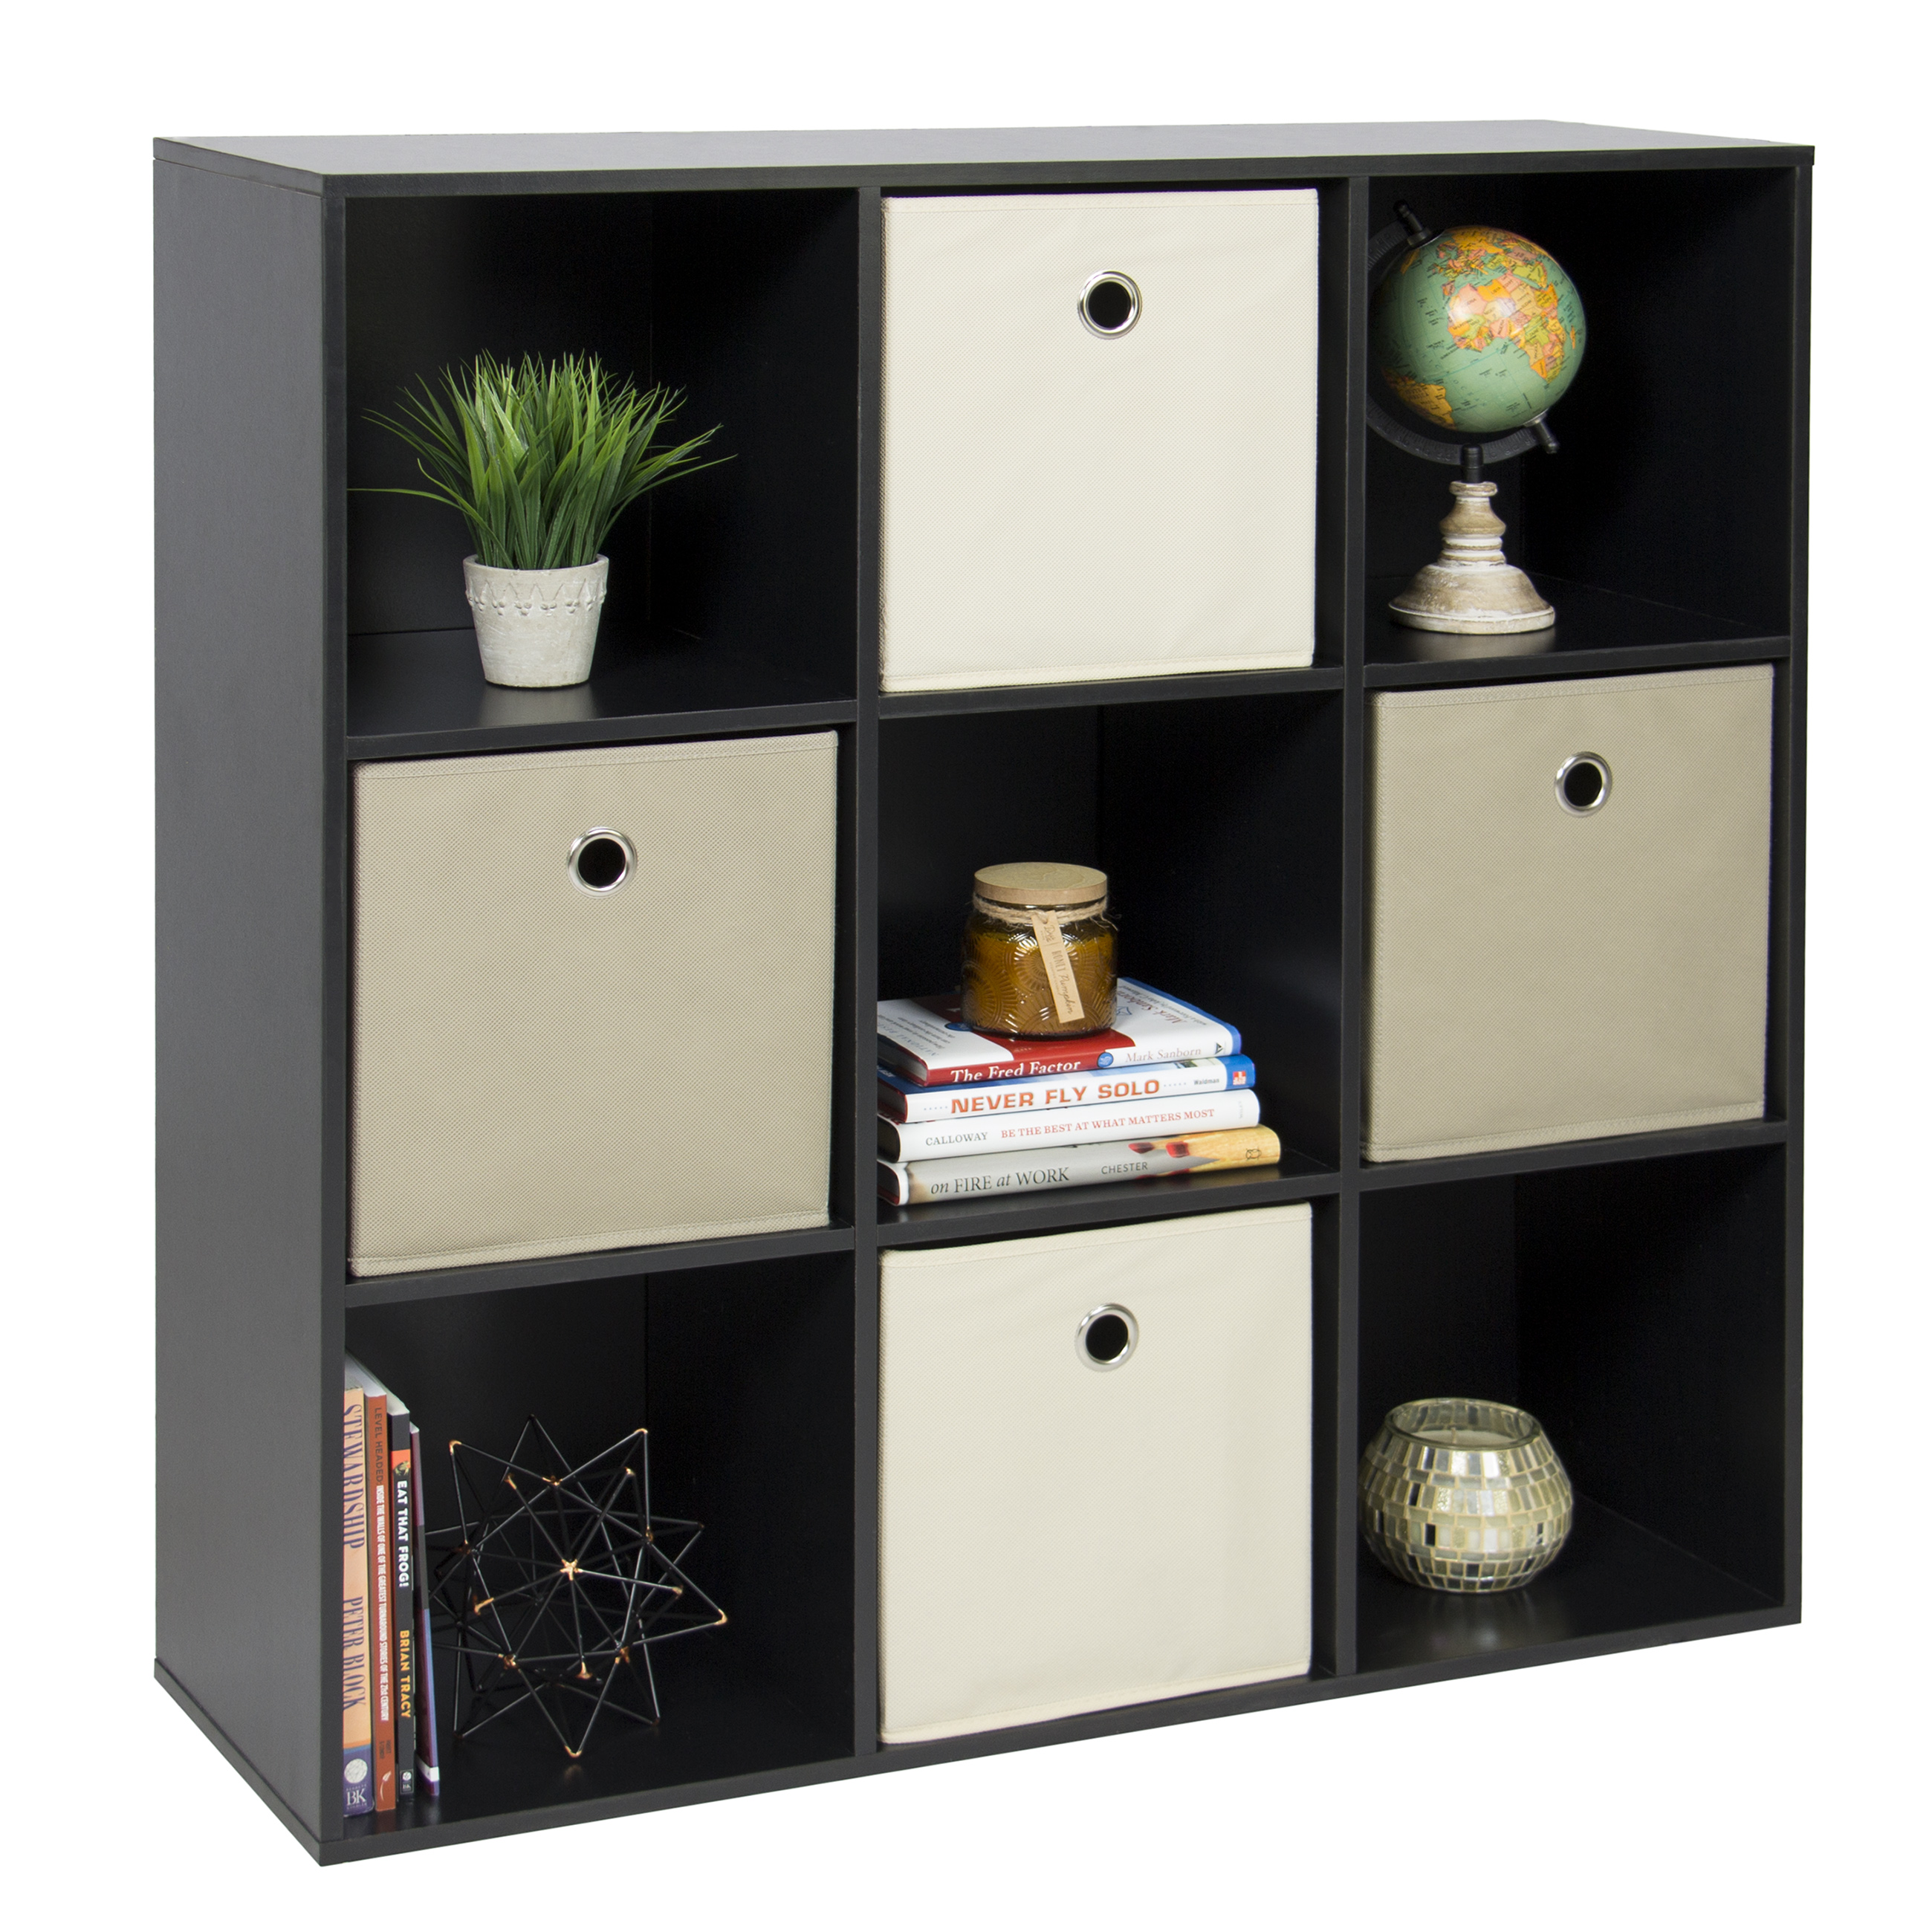 Best Choice Products 9-Cube Stackable Bookshelf Display Storage System Compartment Organizer w/ 3 Removable Back Panels - Black